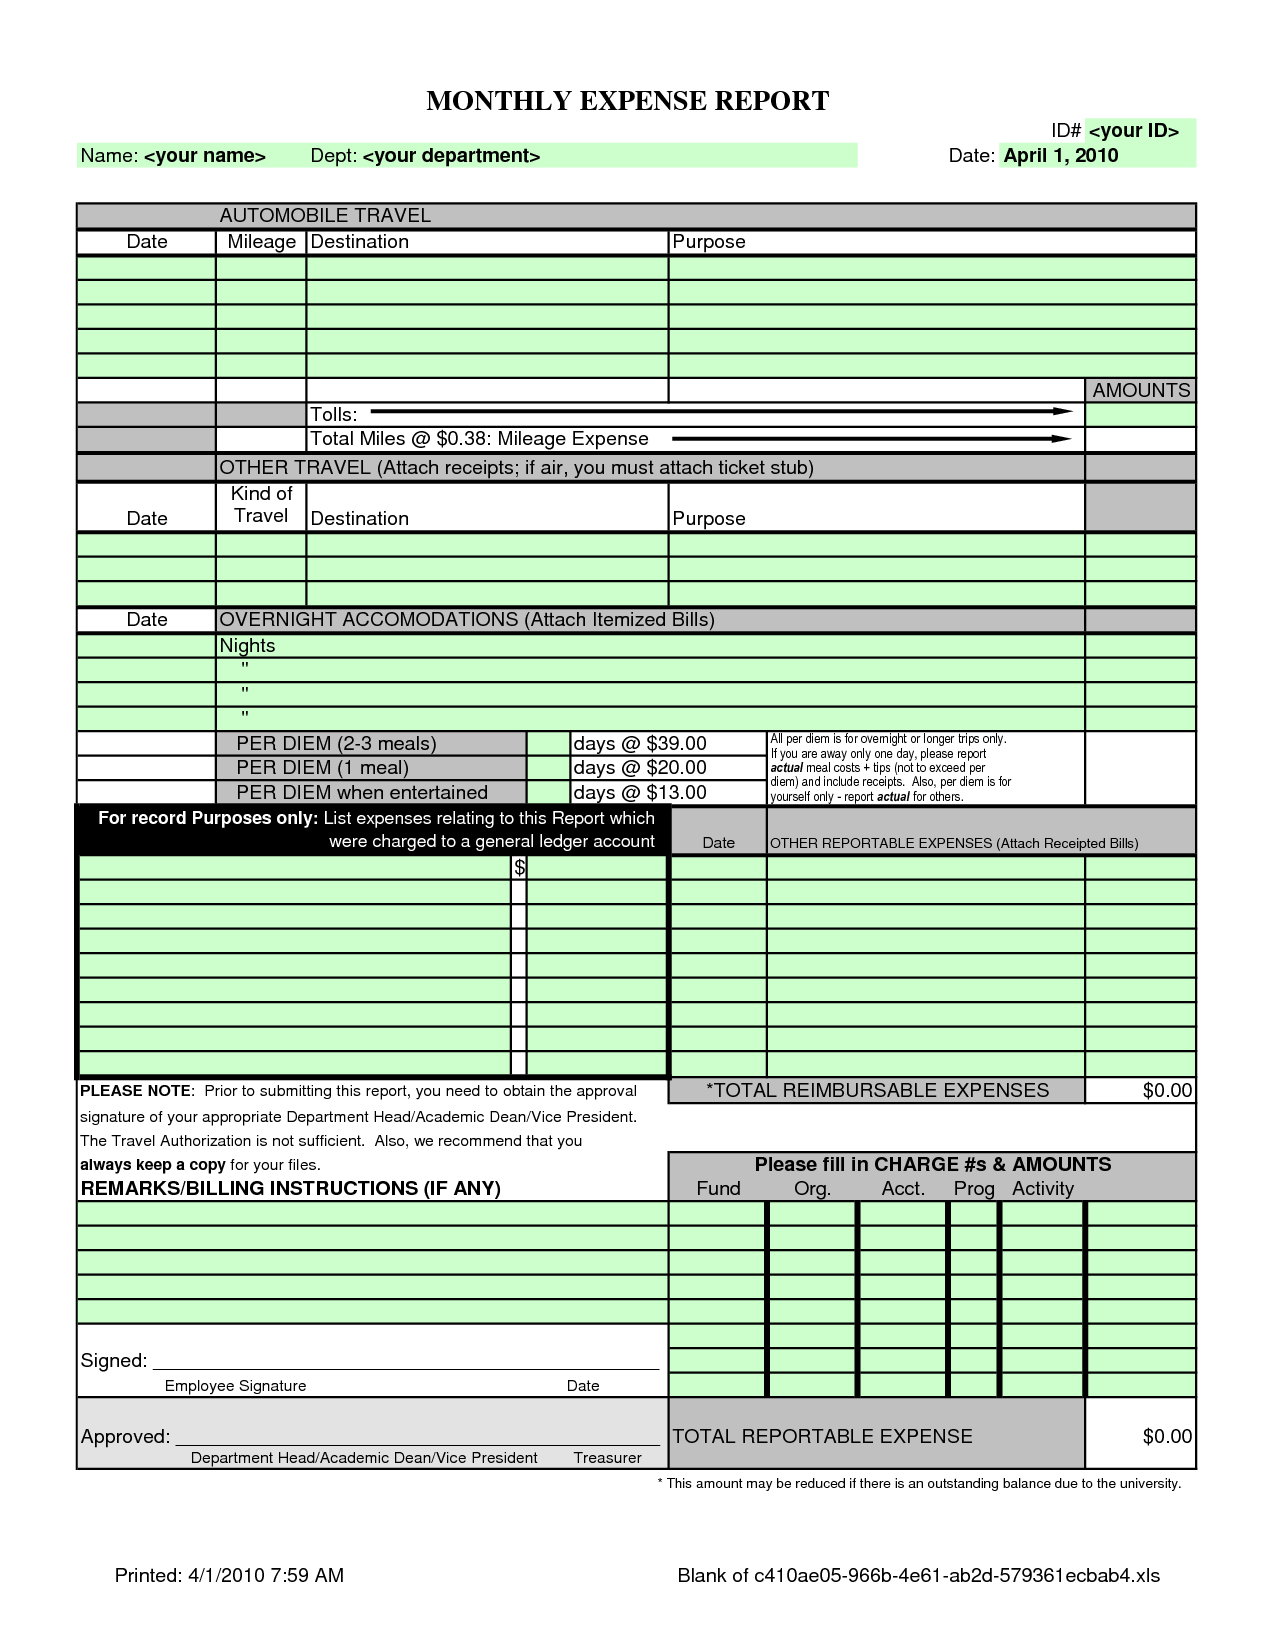 Monthly expense report template charlotte clergy coalition free expense report templates smartsheet friedricerecipe Gallery